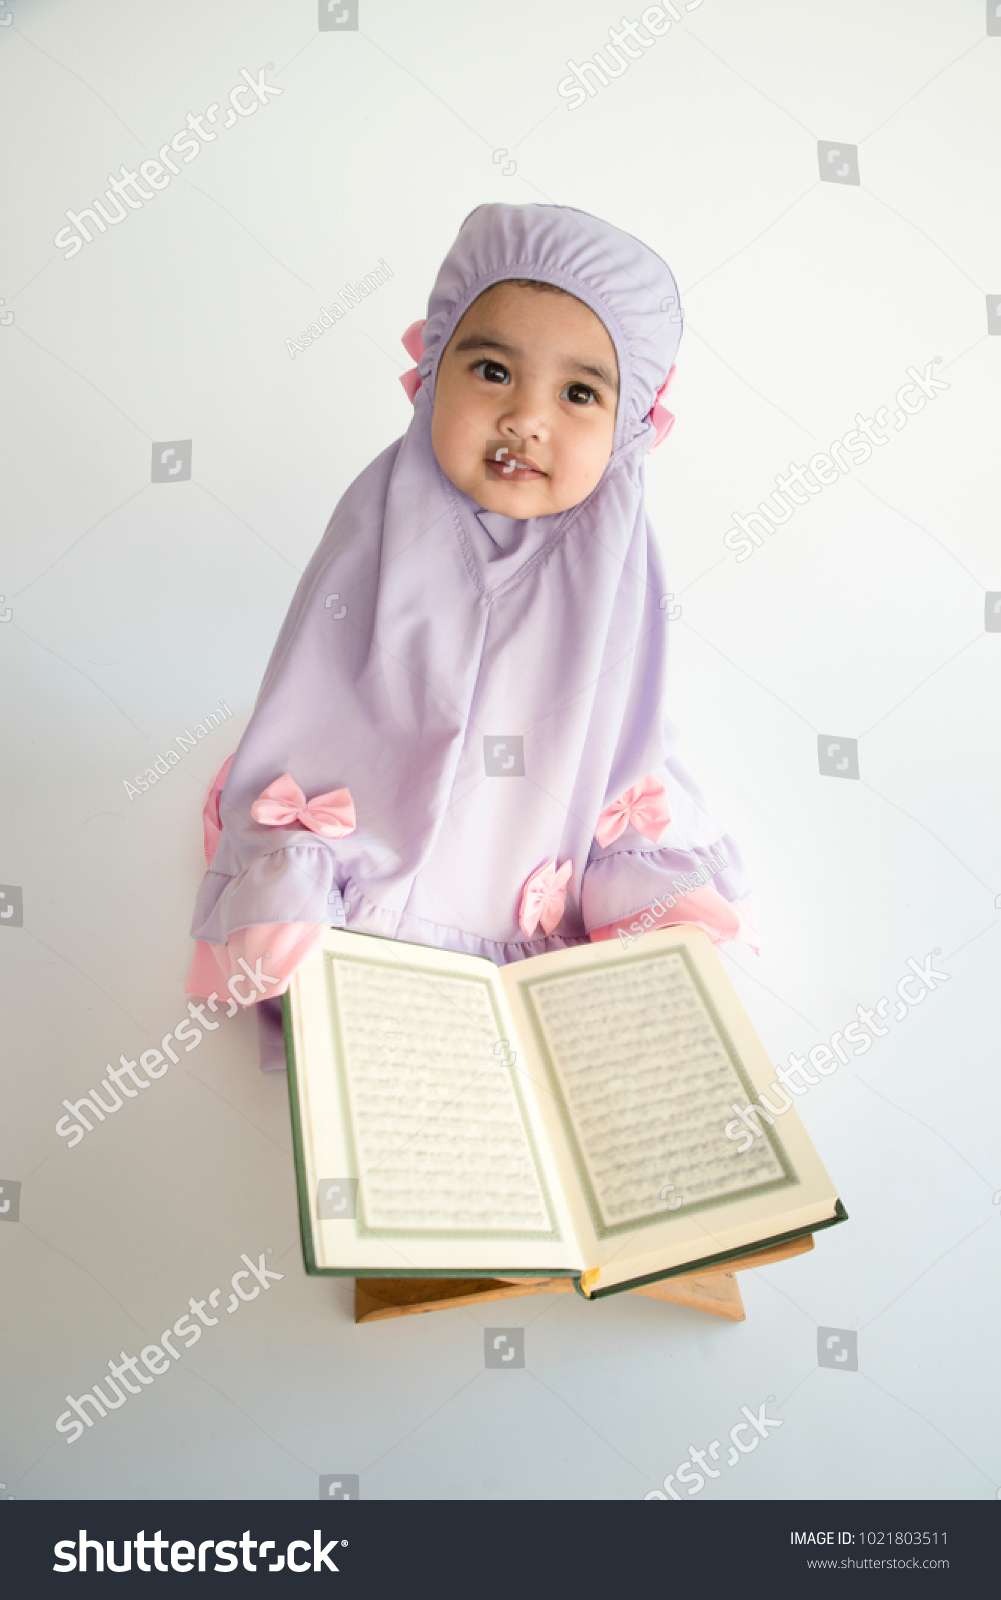 Asian little cute muslim girl reading quran holy book of islam isolated on white background